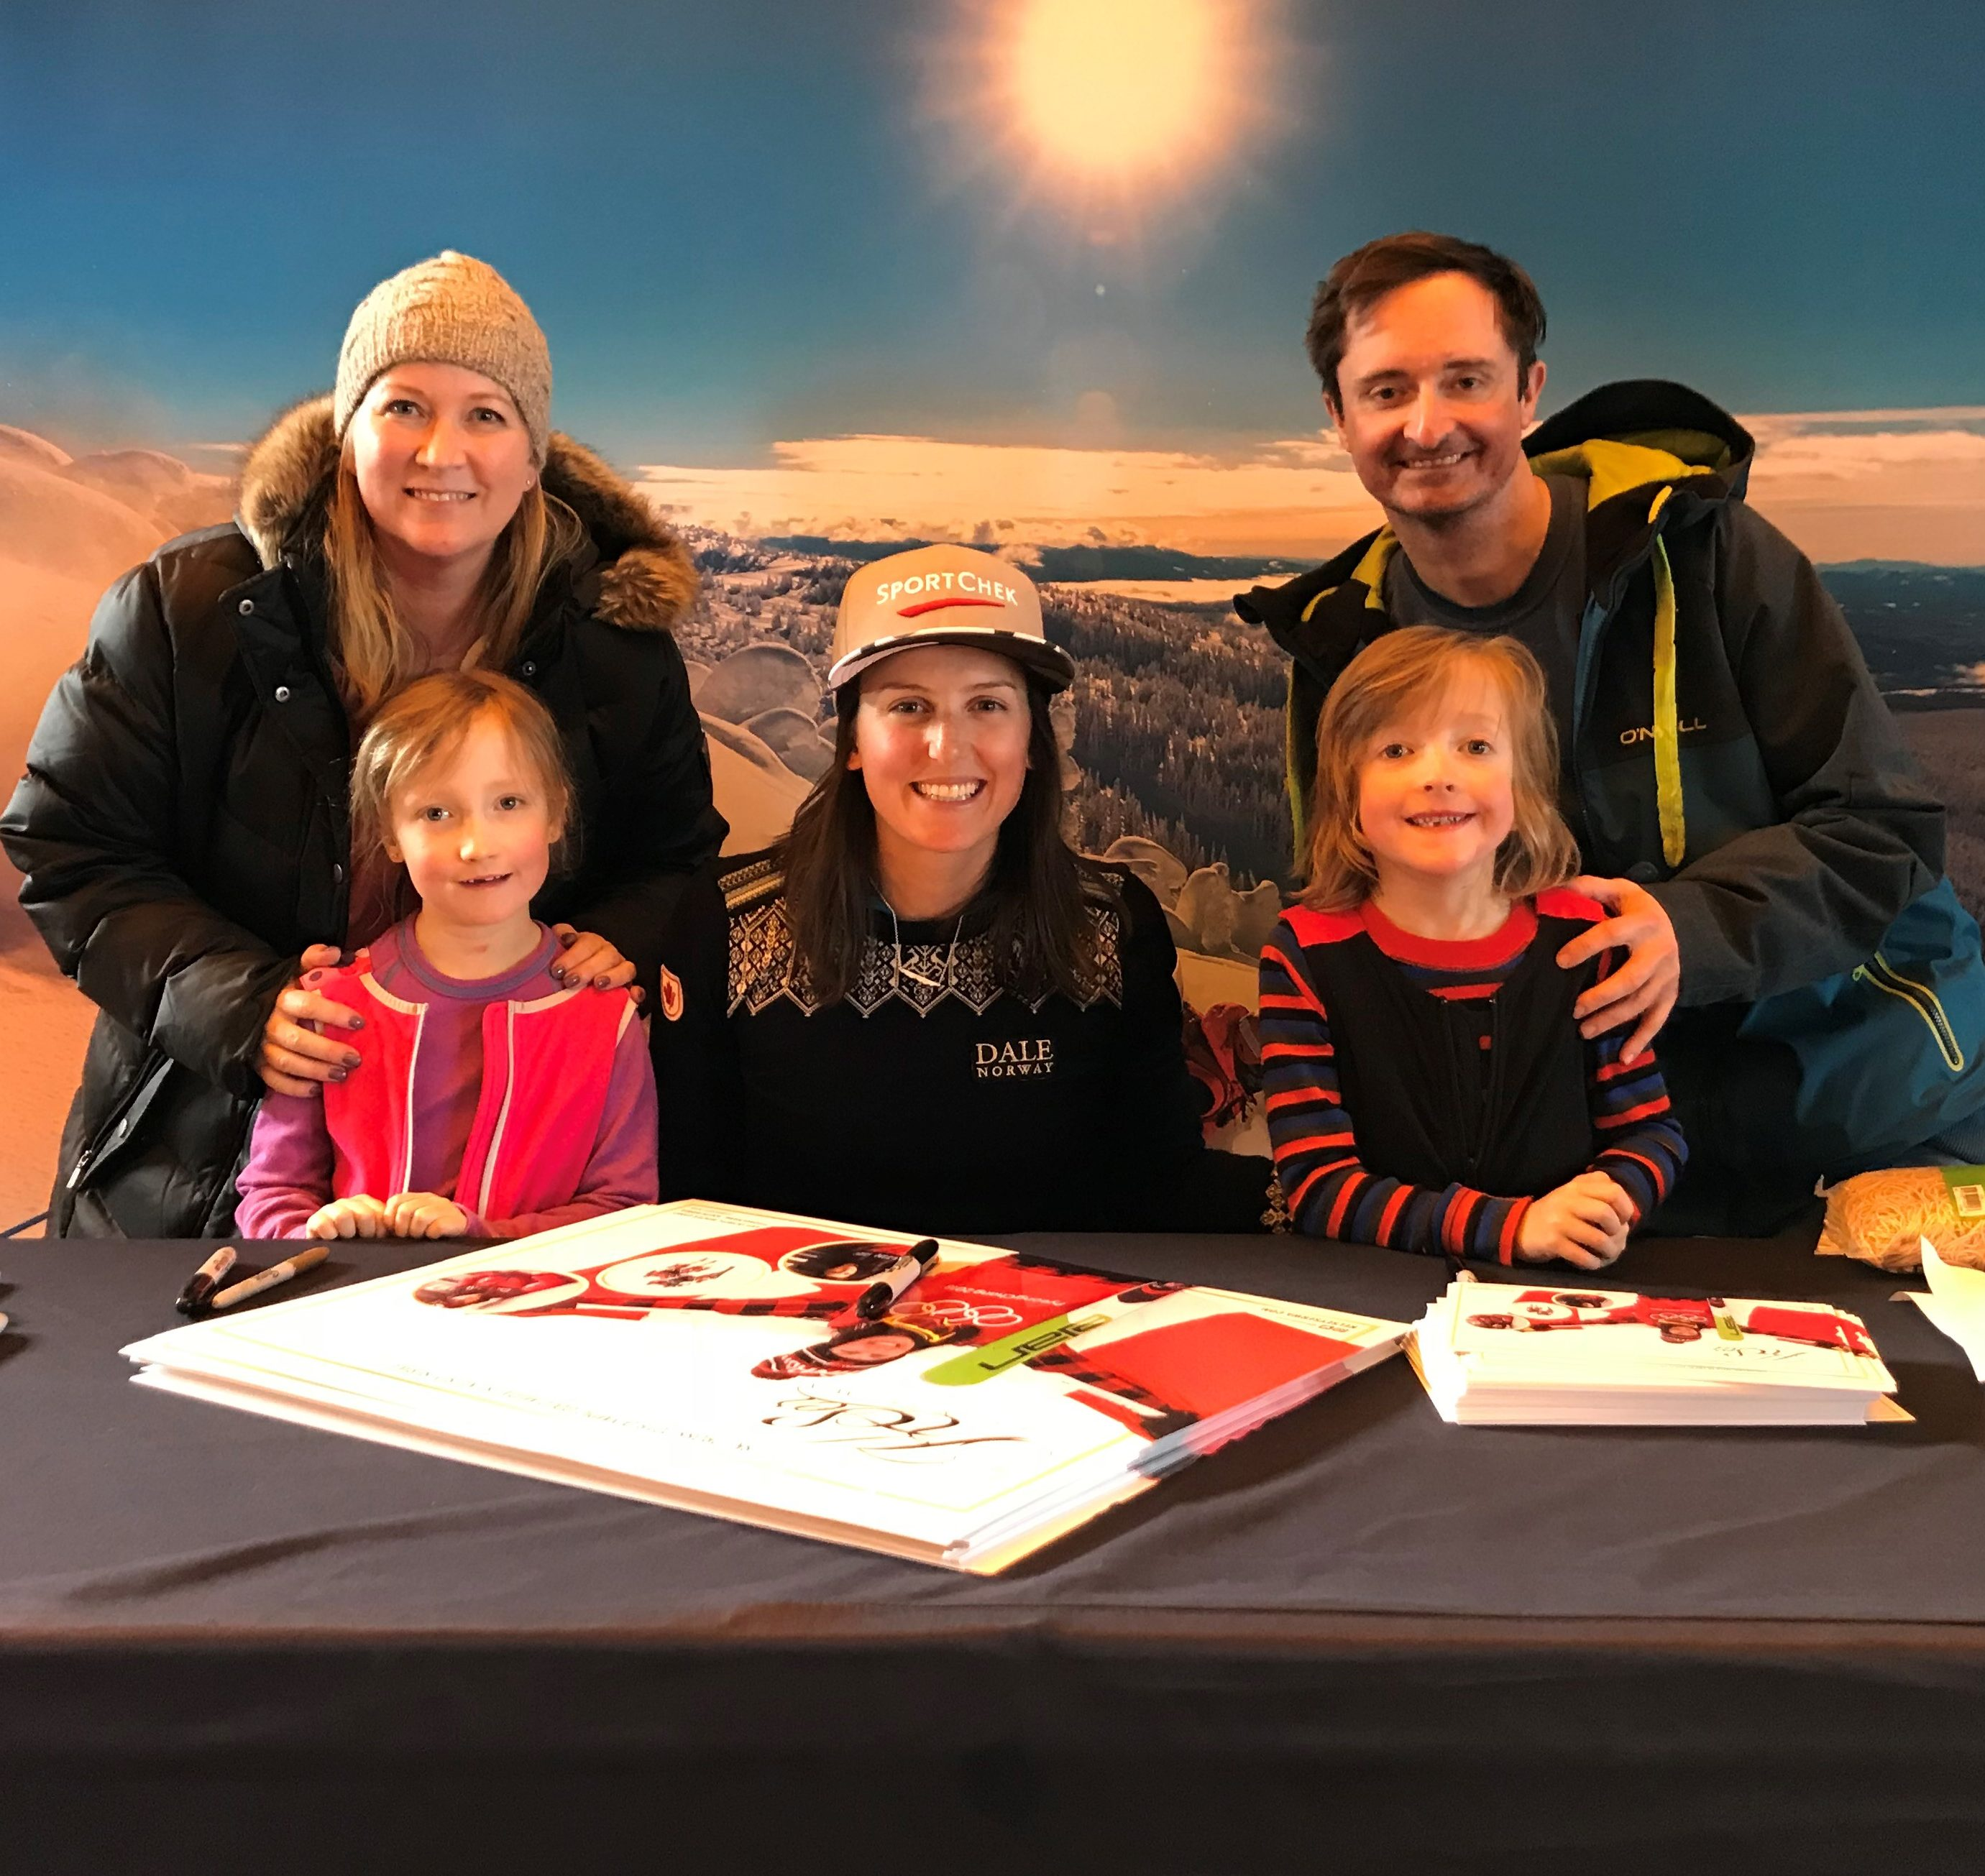 Andrew and Lesley Family Photo with Two Children and Rotary Woman